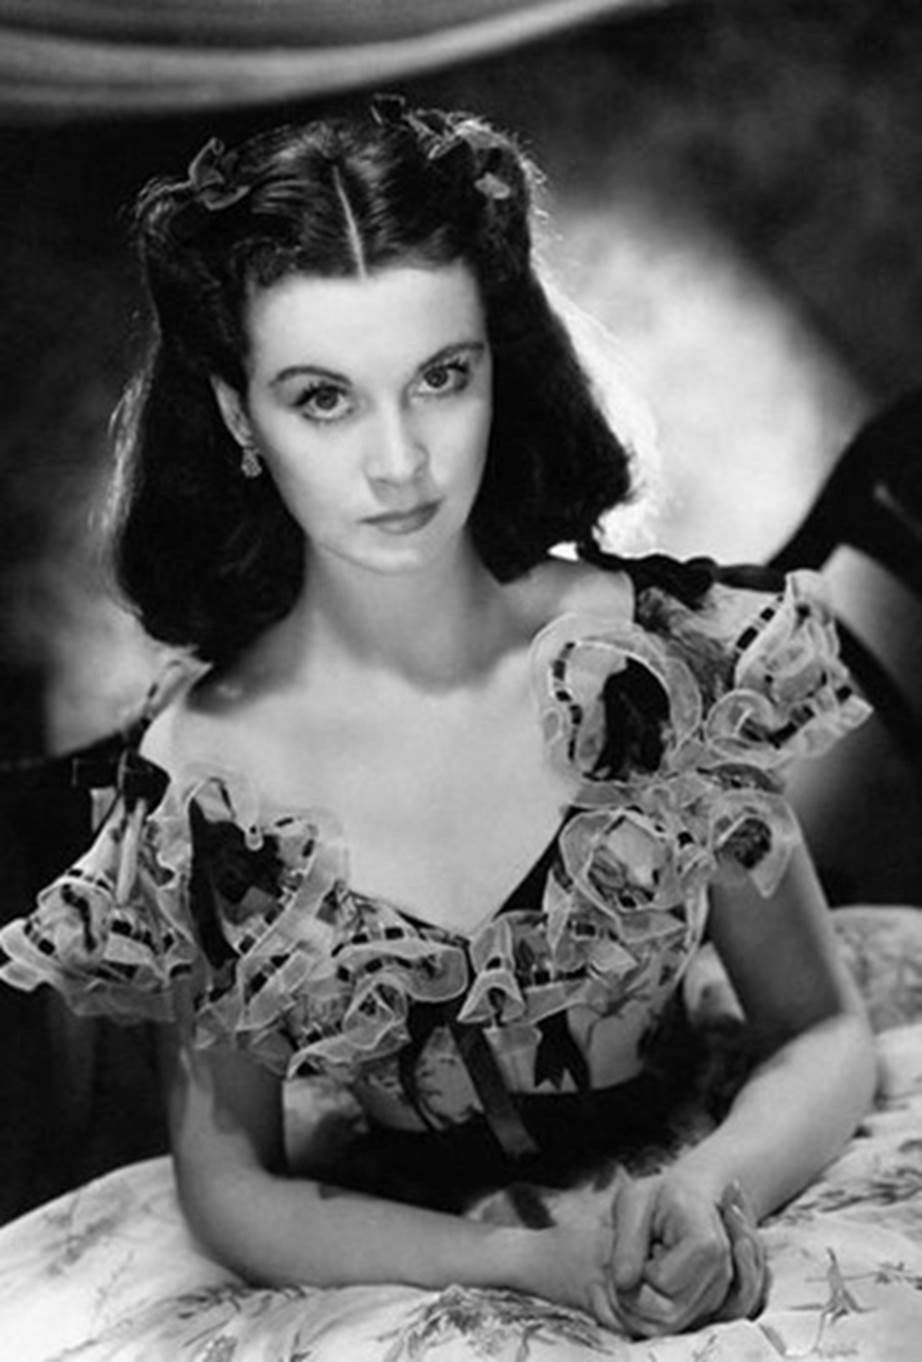 **Scarlett O'Hara, *Gone With The Wind***. Vivien Leigh's famous portrayal of Scarlett O'Hara in *Gone with the Wind* will forever be a classic. We adore the Southern belle look with rolled-back hair.